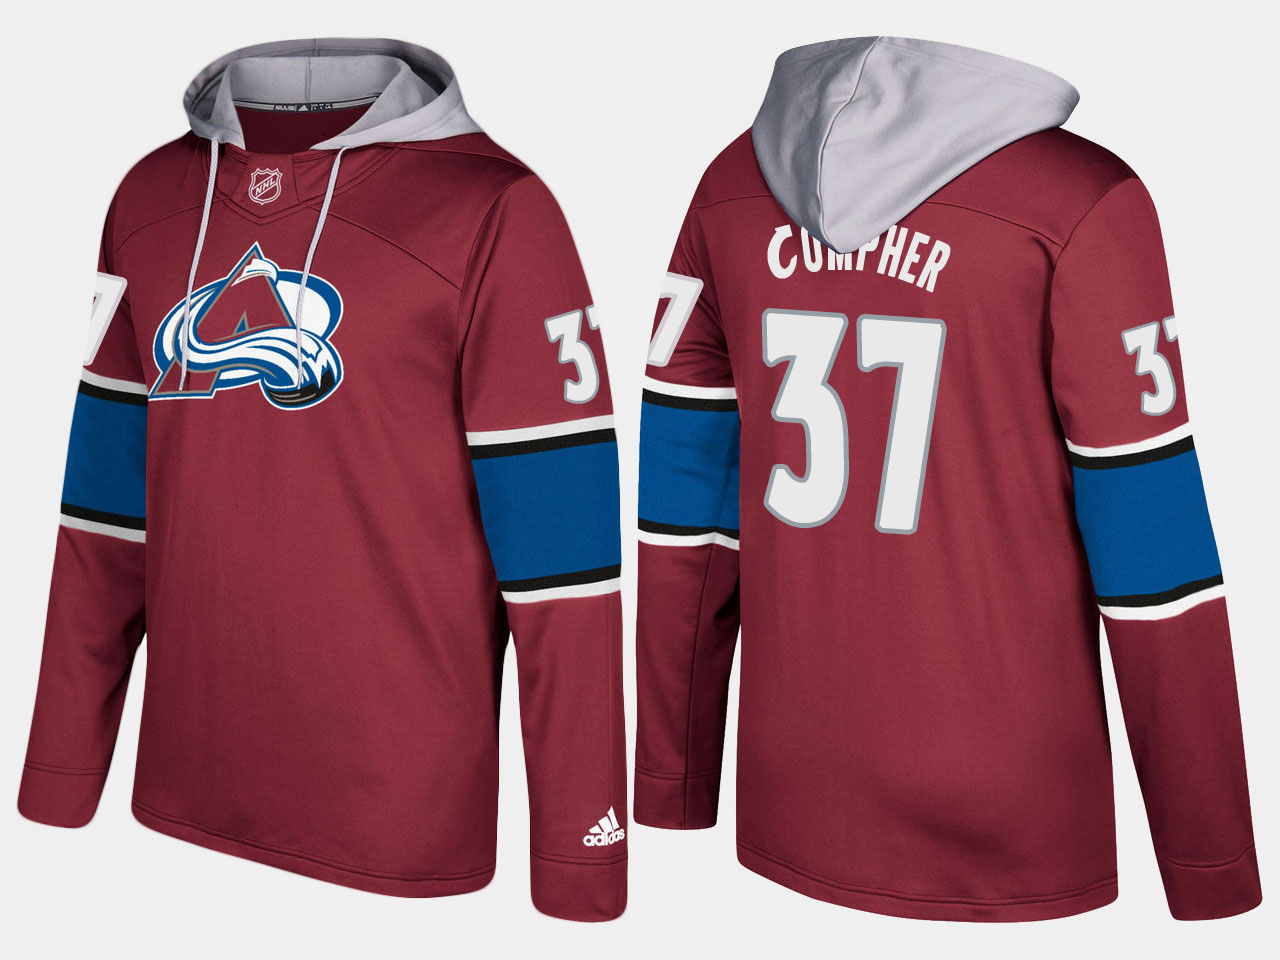 Men NHL Colorado avalanche 37 j.t. compher burgundy hoodie